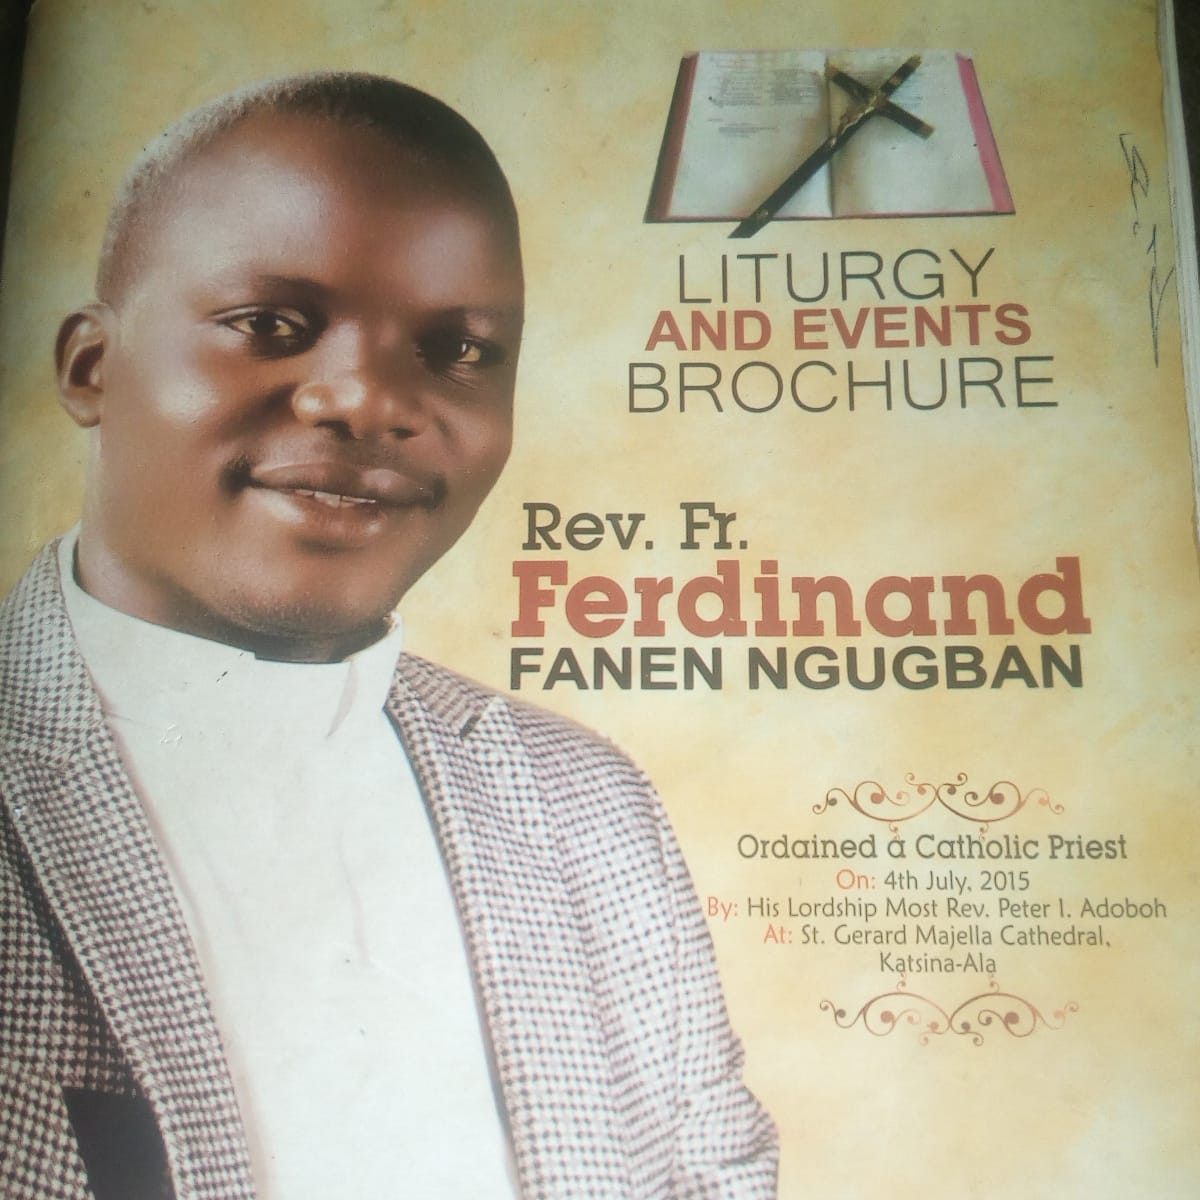 Killers of Catholic priest will be apprehended - Governor Ortom